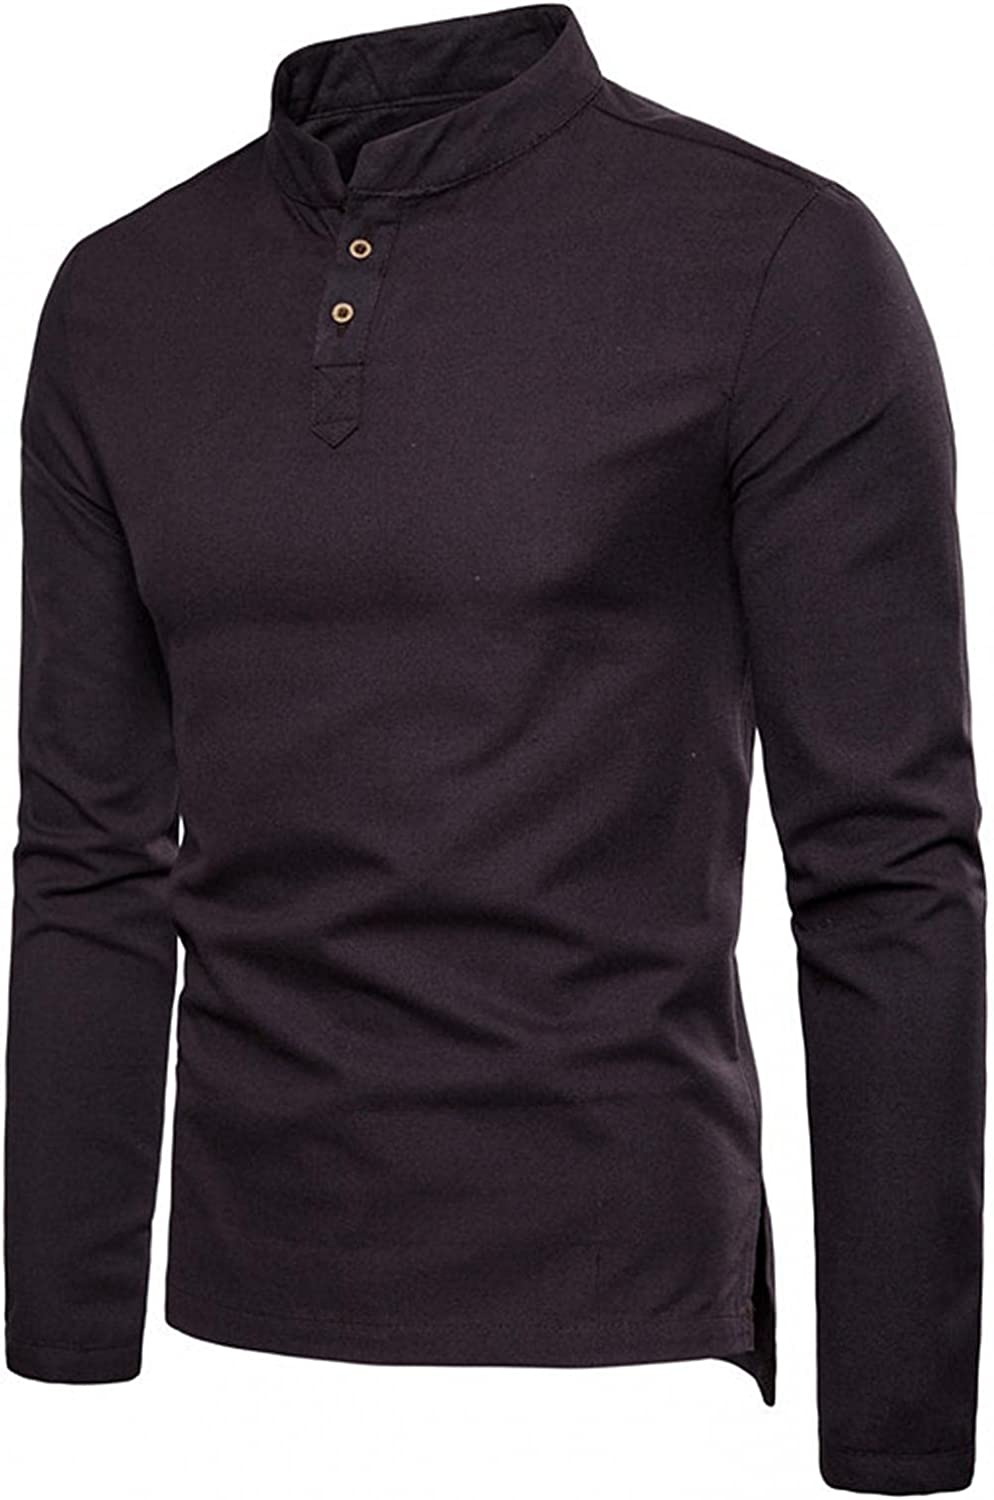 Henley Tops for Men Long Sleeve Stand Collar Button Down Shirts Casual Loose Pullover Sweatershirts Soft Cozy Linen Tee